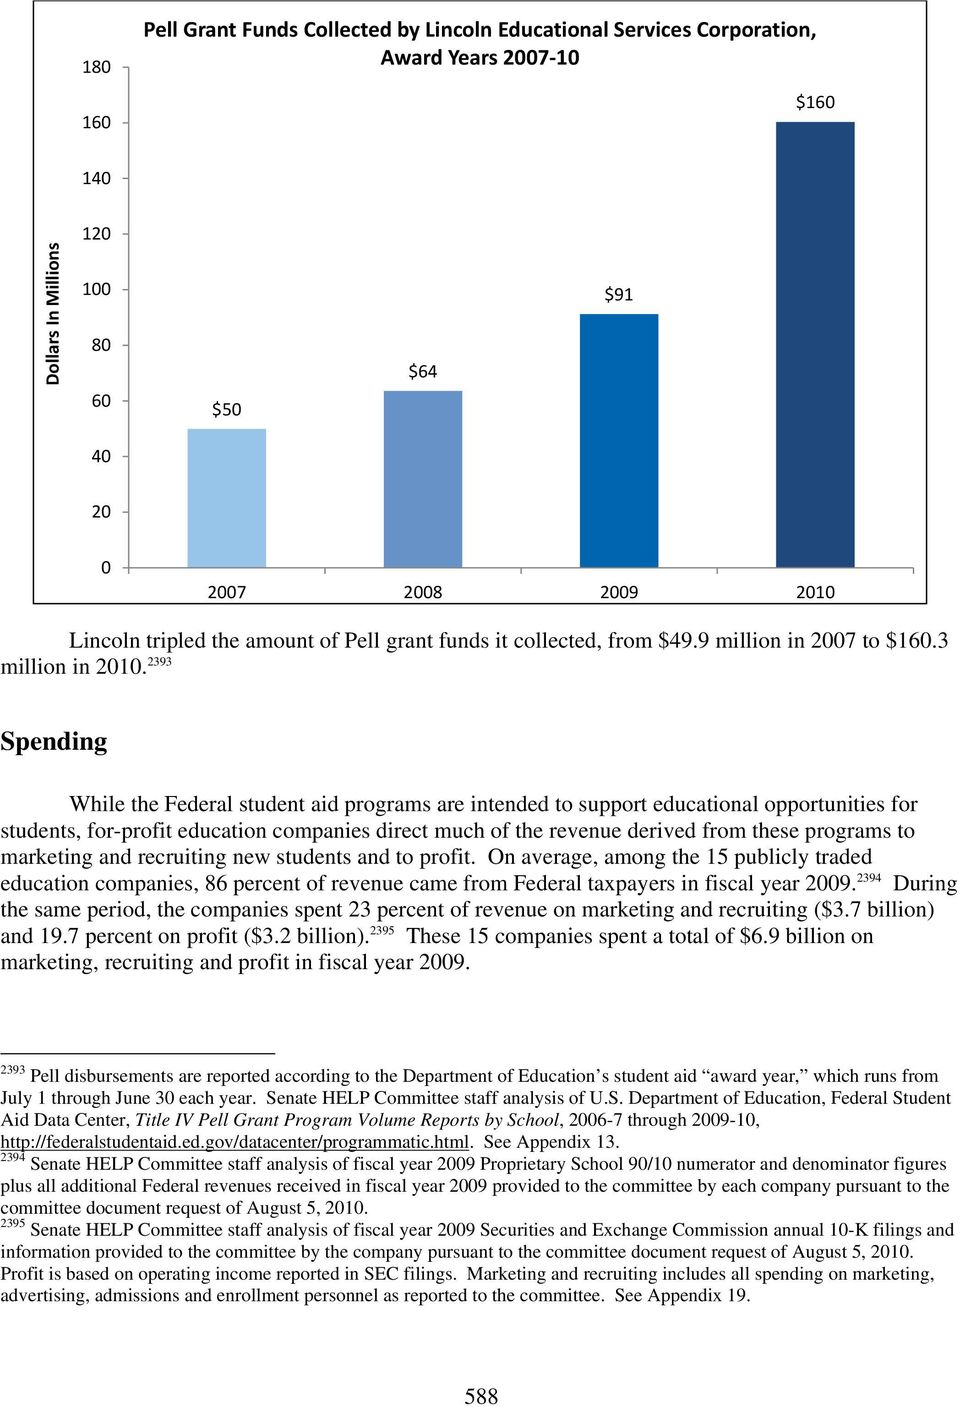 2393 Spending While the Federal student aid programs are intended to support educational opportunities for students, for-profit education companies direct much of the revenue derived from these